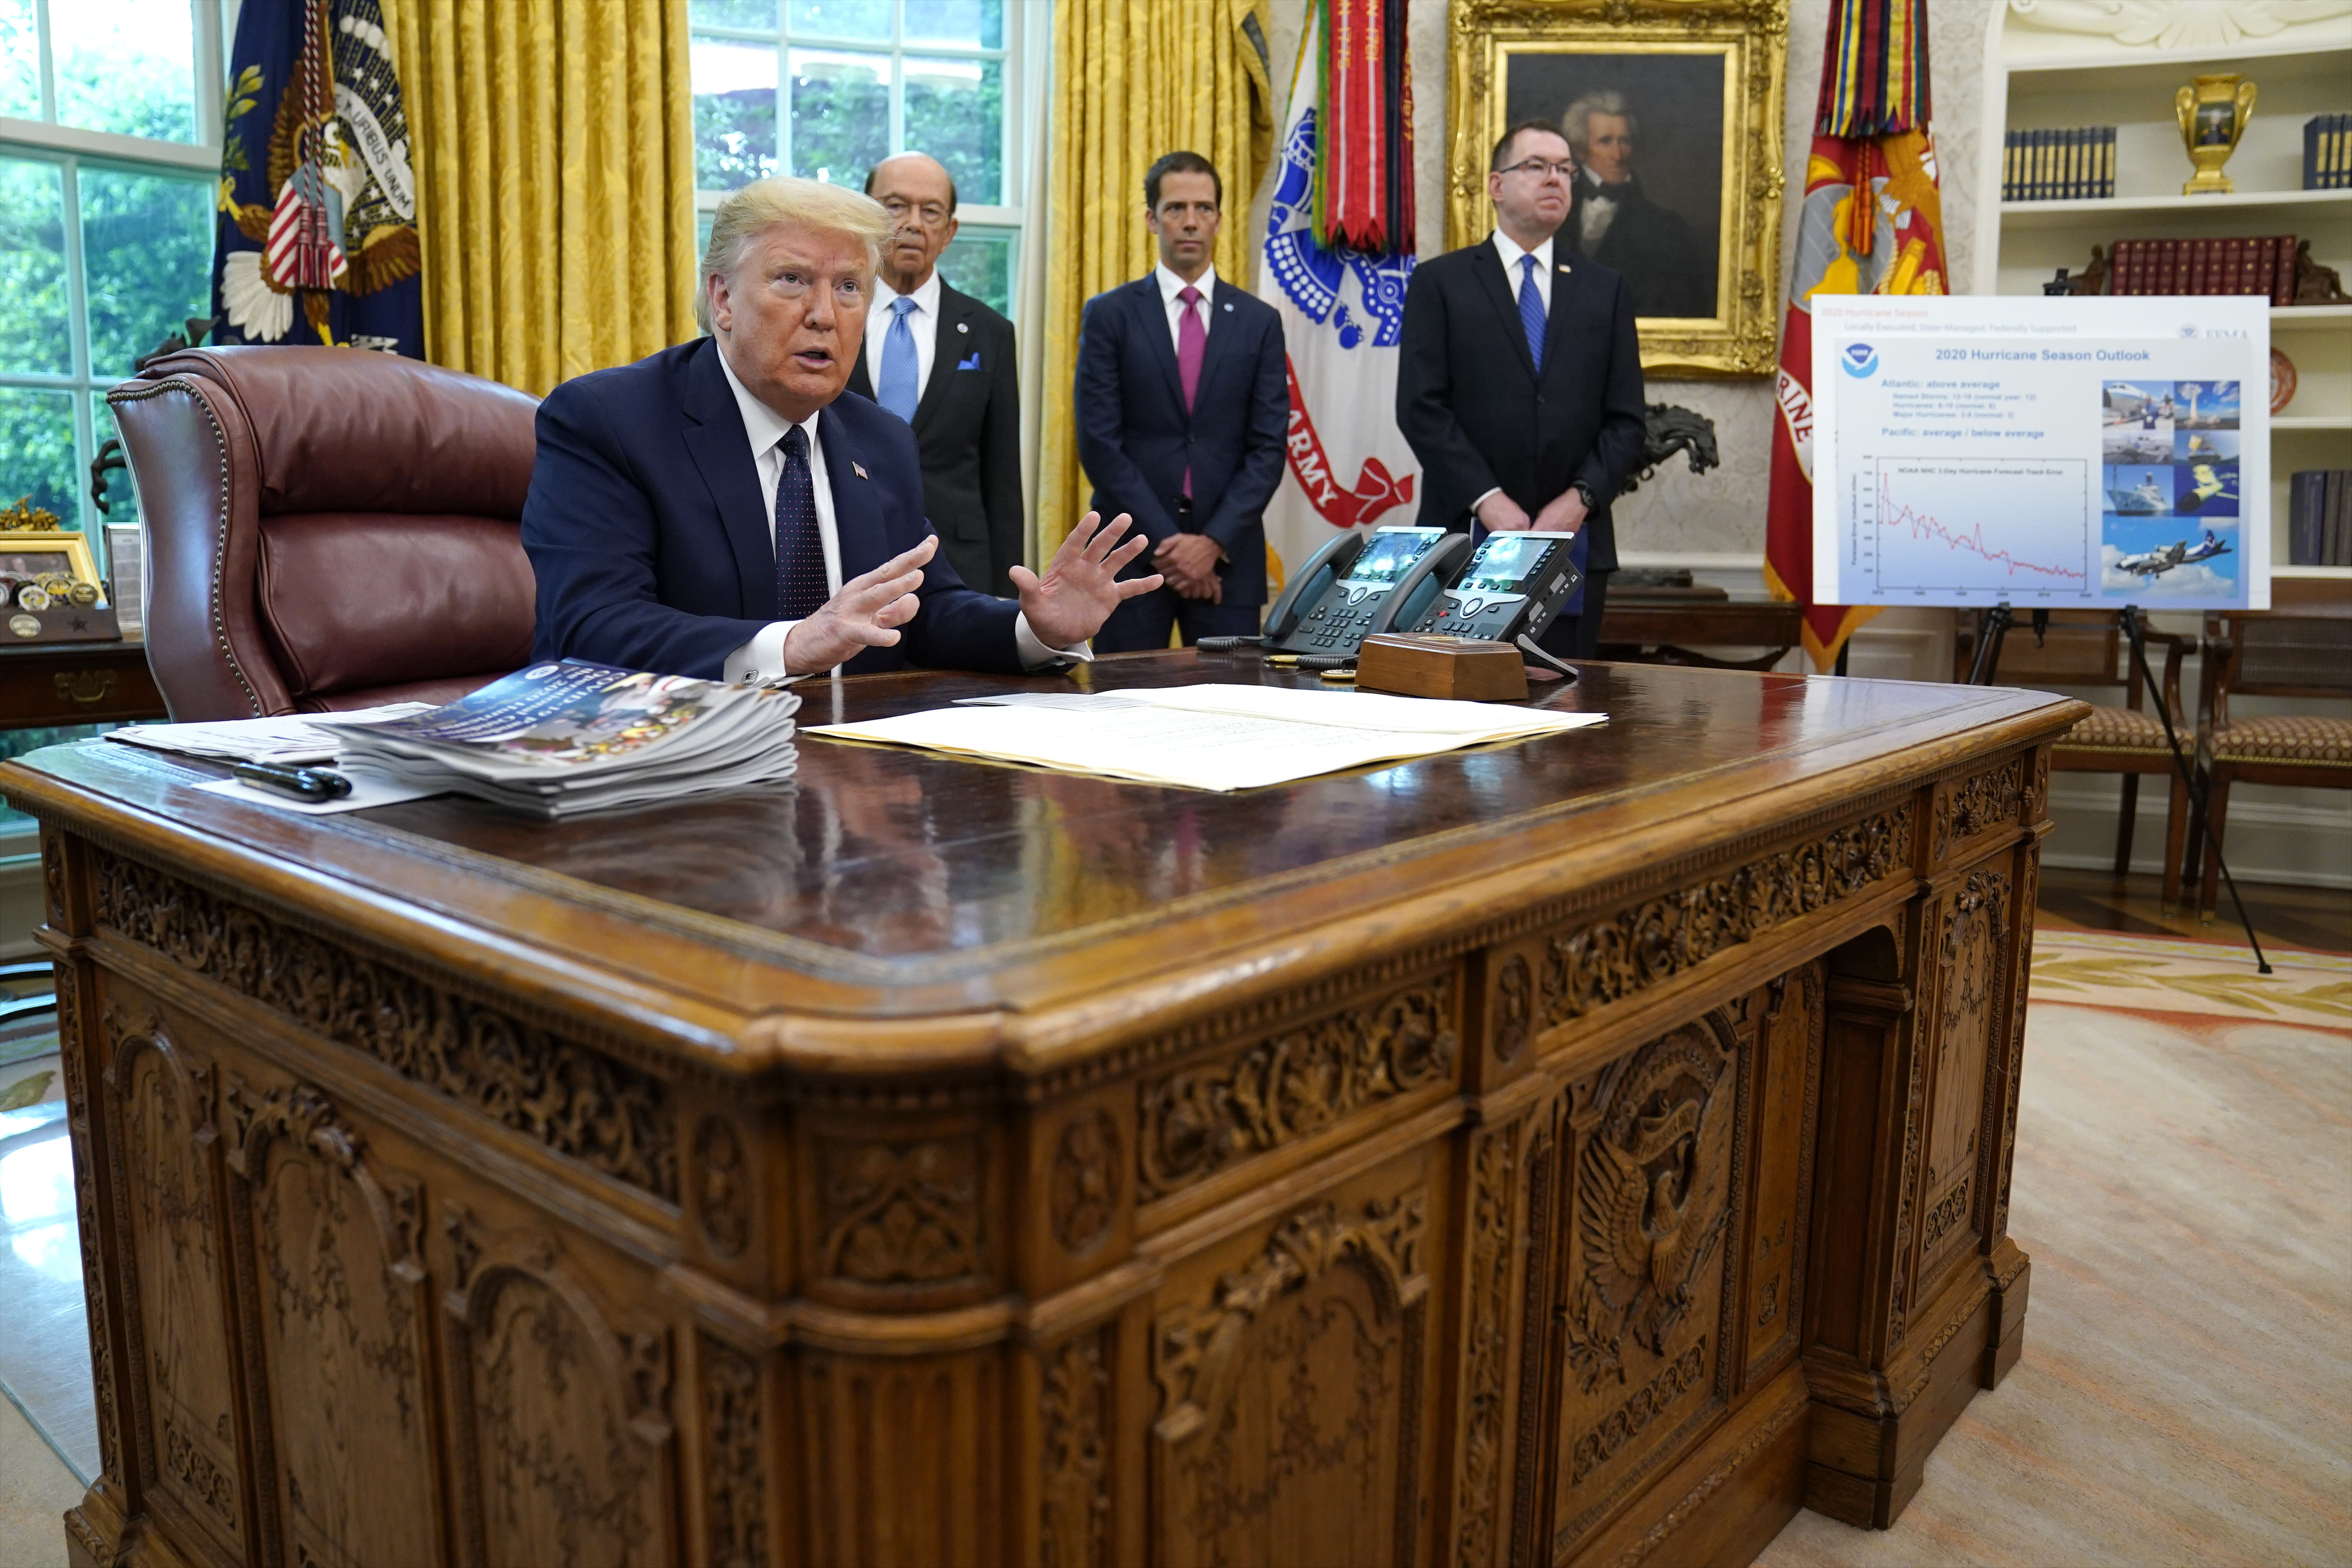 President Donald Trump speaks as he receives a briefing on the 2020 hurricane season in the Oval Office of the White House, Thursday, May 28, 2020, in Washington. Watching are Commerce Secretary Wilbur Ross and Neil Jacobs, assistant Secretary of Commerce for Environmental Observation and Prediction, and Pete Gaynor, administrator of the Federal Emergency Management Agency. (AP Photo/Evan Vucci)